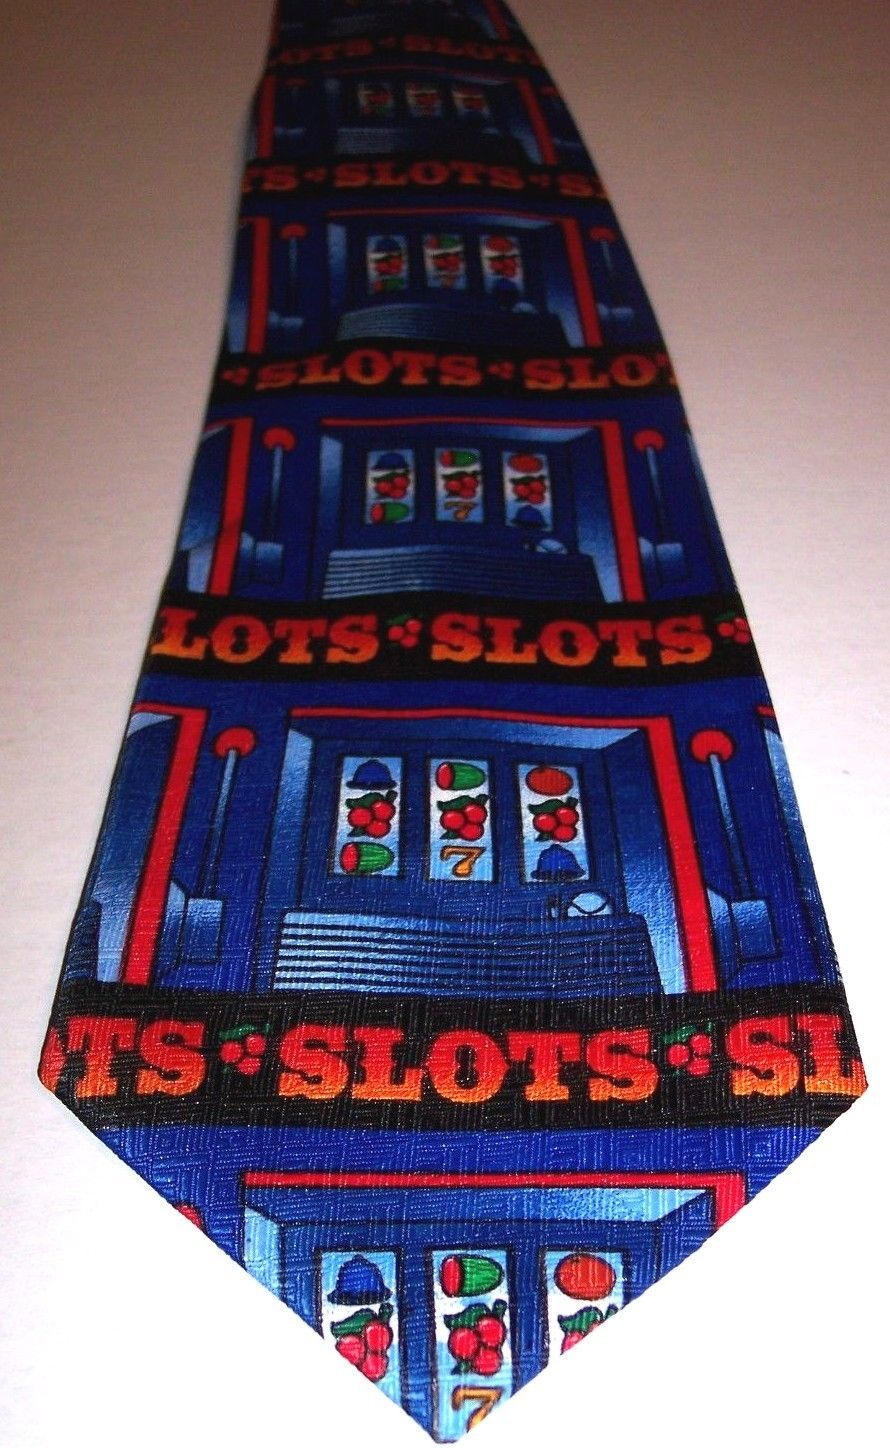 2c98f66c9ffd S l1600. S l1600. Previous. Ralph Marlin Tie Men's Gamble Slot Machines  Vegas Gambling Theme Novelty Necktie